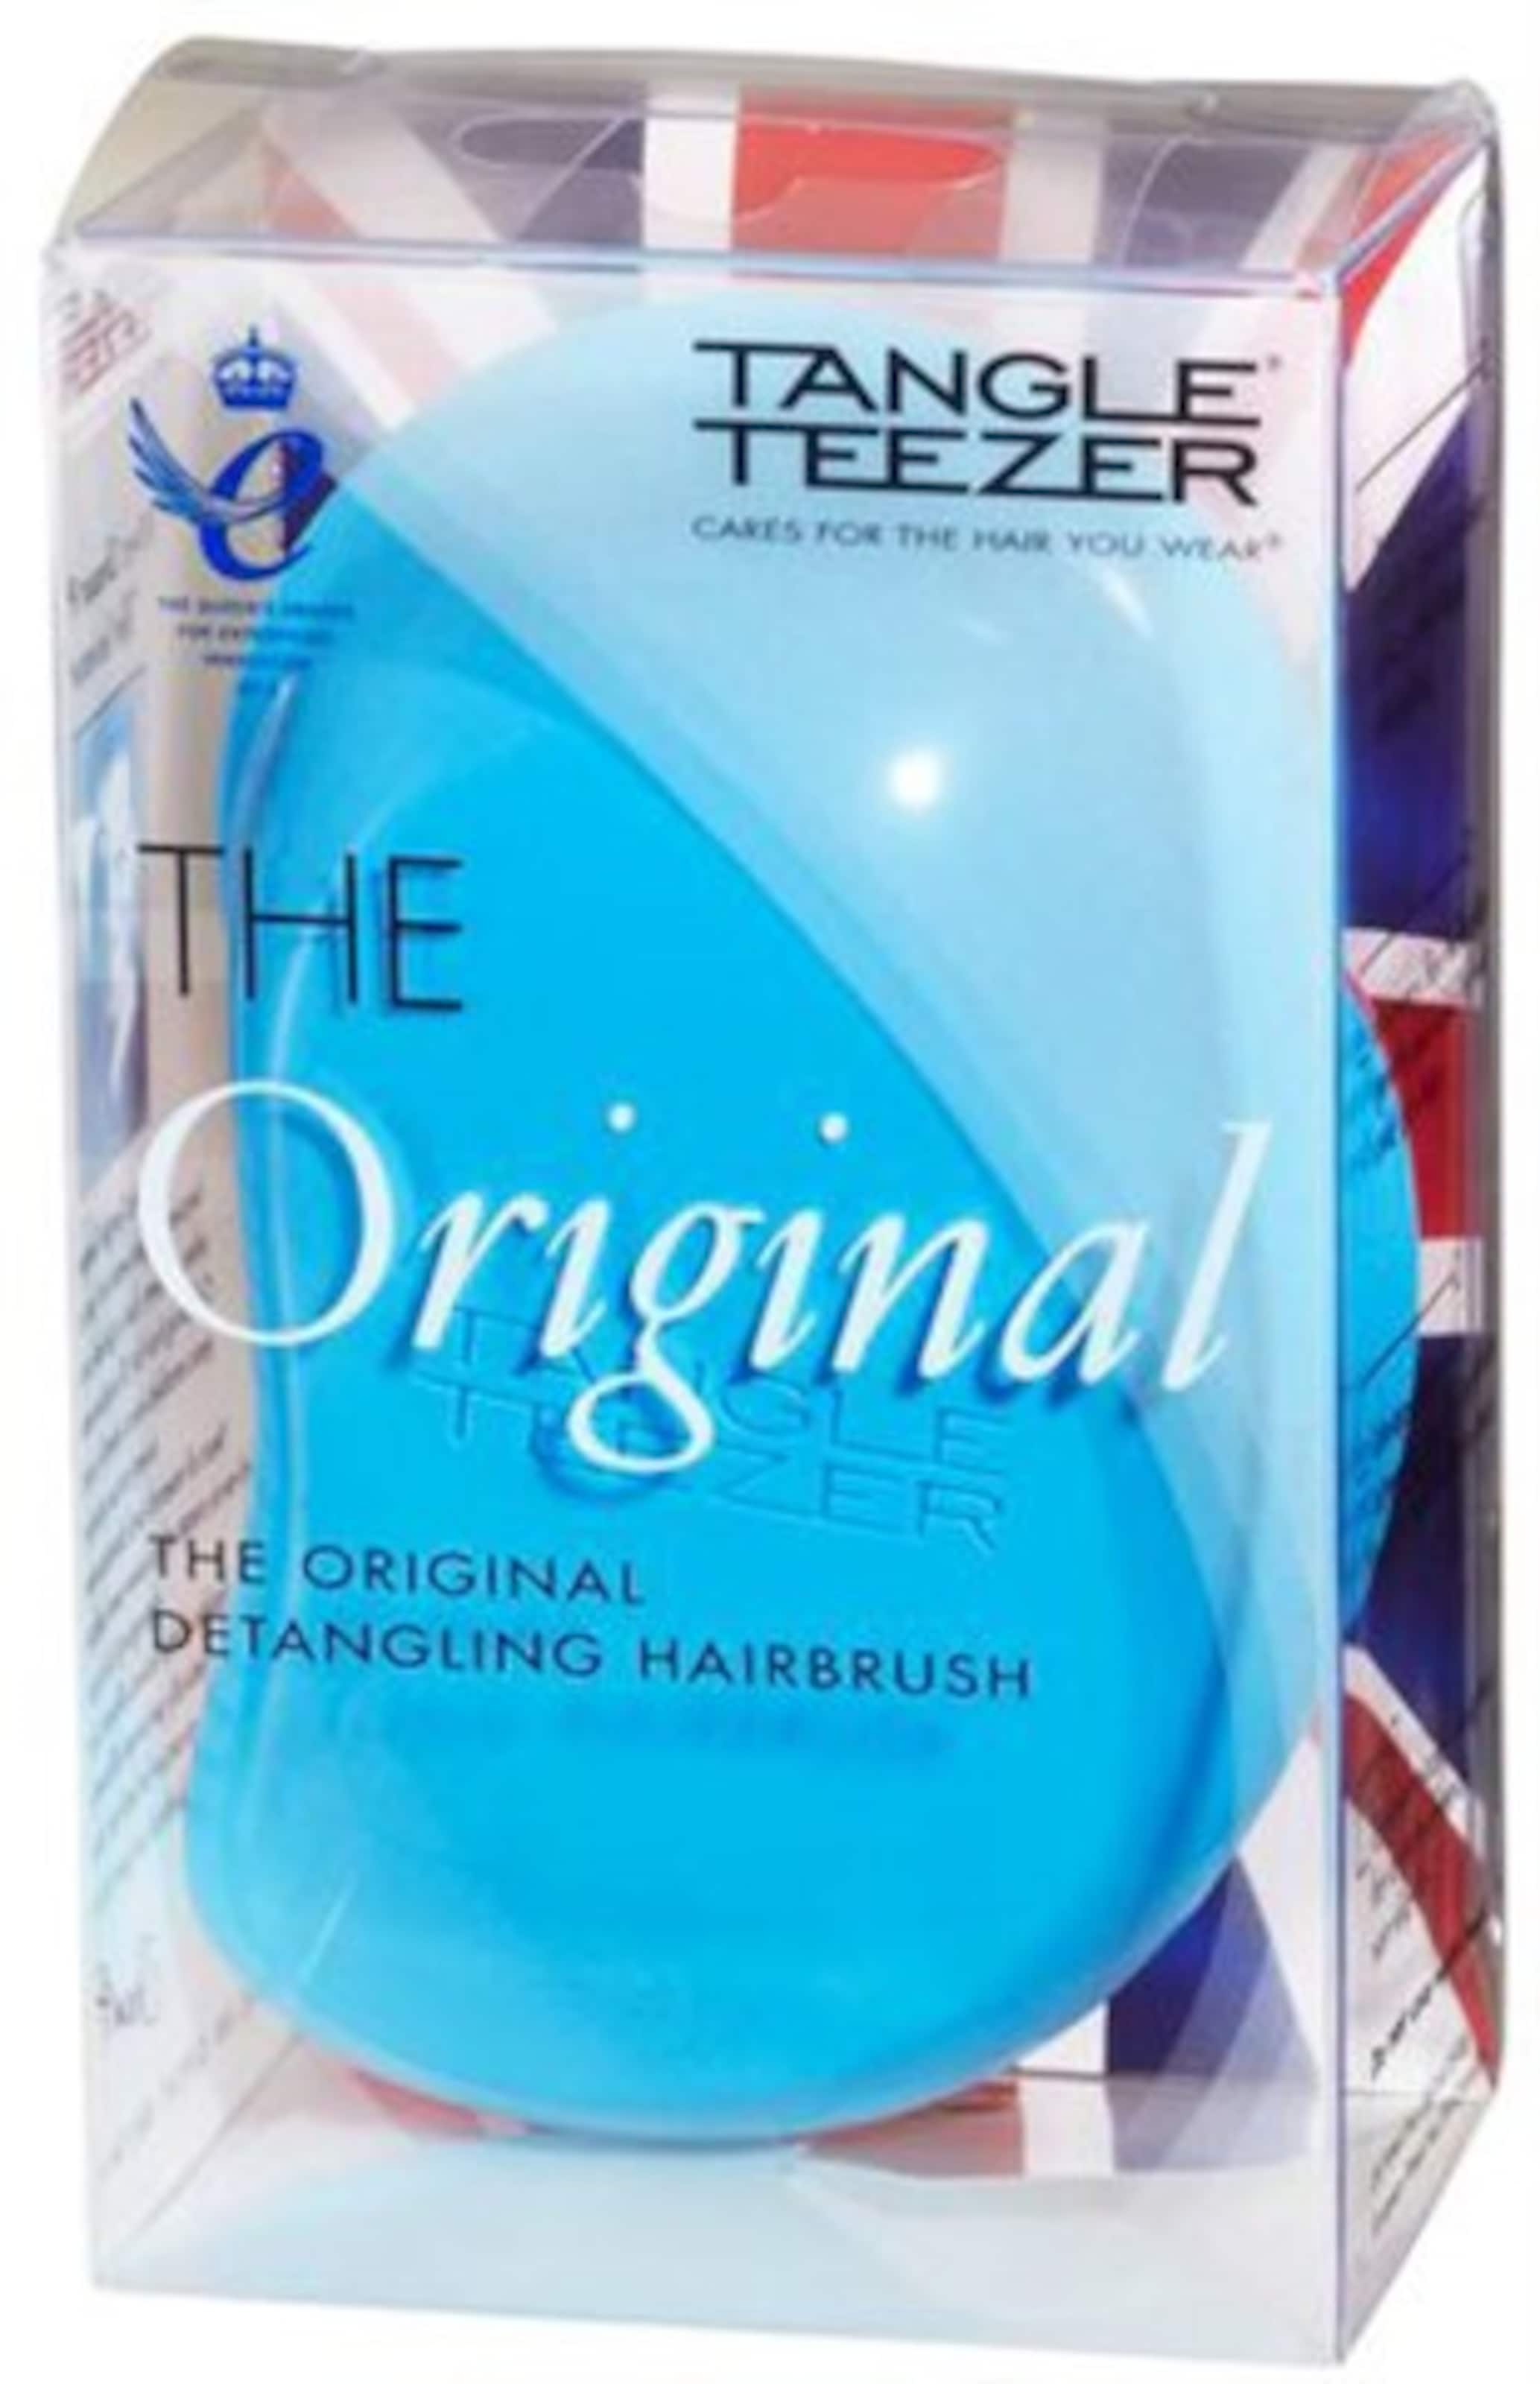 'The zum TANGLE der Haare TANGLE Original' 'The Haarb眉rste TEEZER Original' Entknoten TEEZER dqBw6d4x8